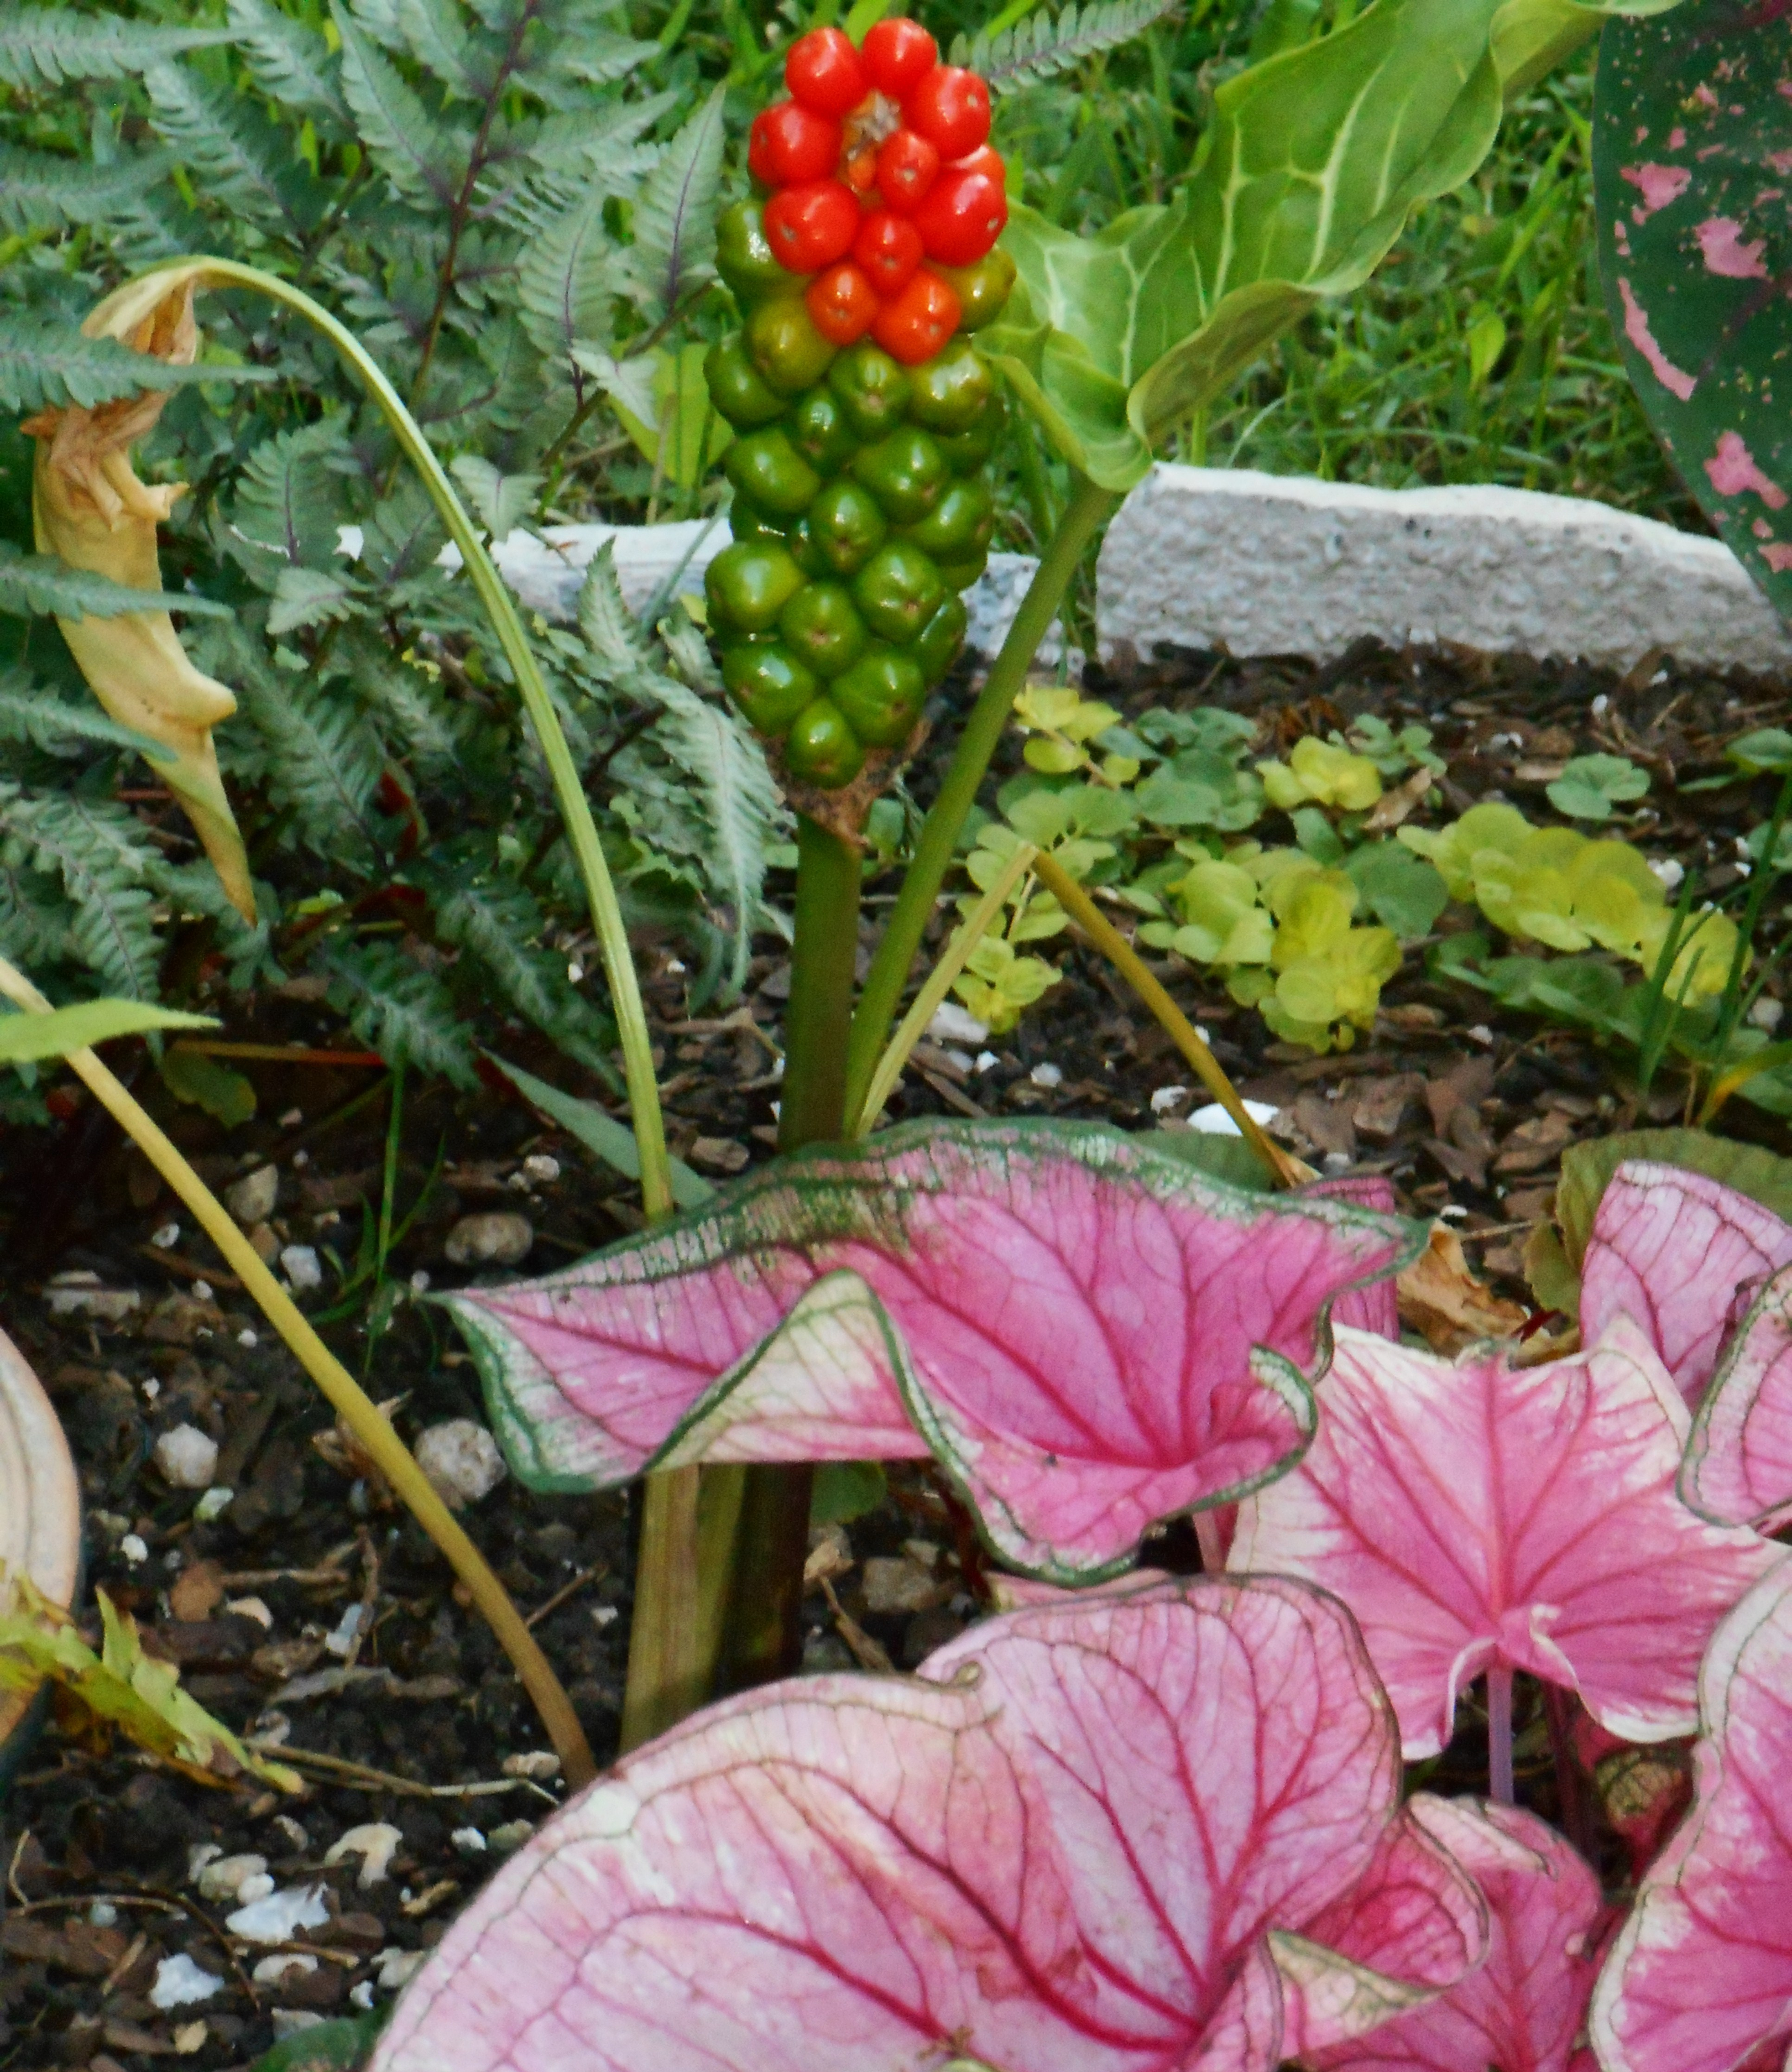 As Arum itallicum nears the end of its season, its berries redden and its leaves wilt away. It will sprout new leaves in the autumn, growing strong and green all winter and spring. Calladiums will fill its place for the summer.